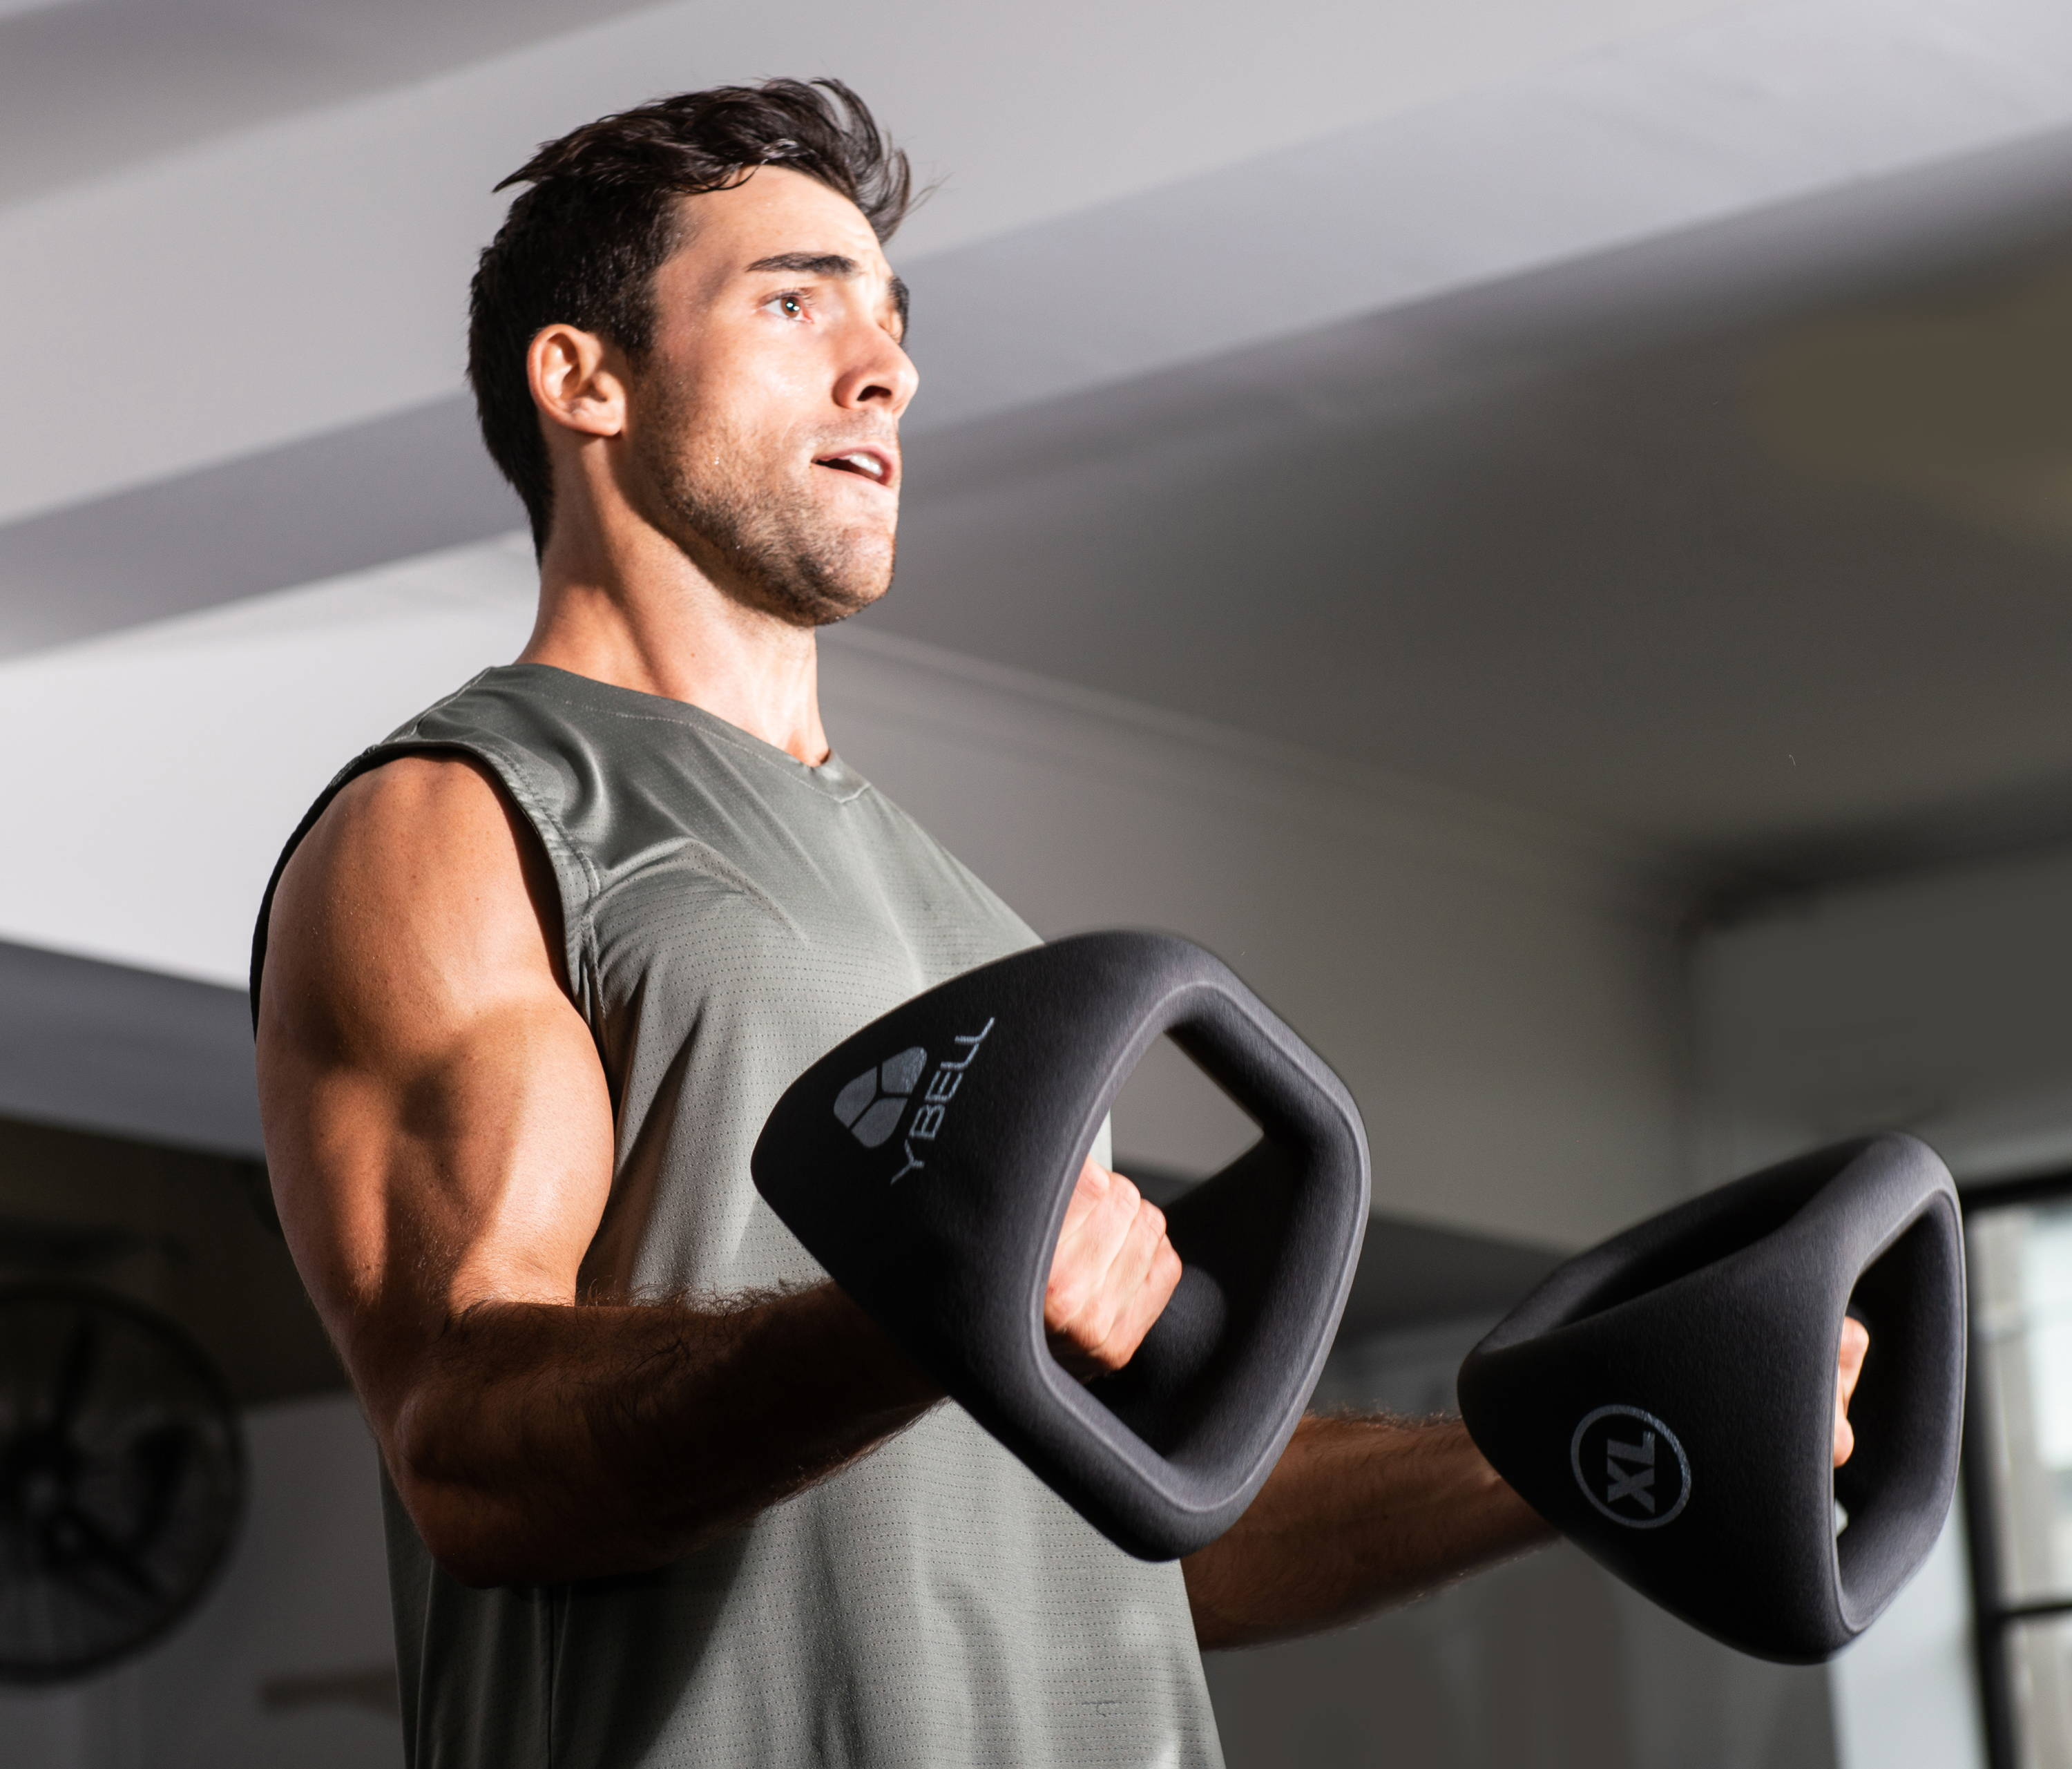 A man working out with YBells in a home gym.